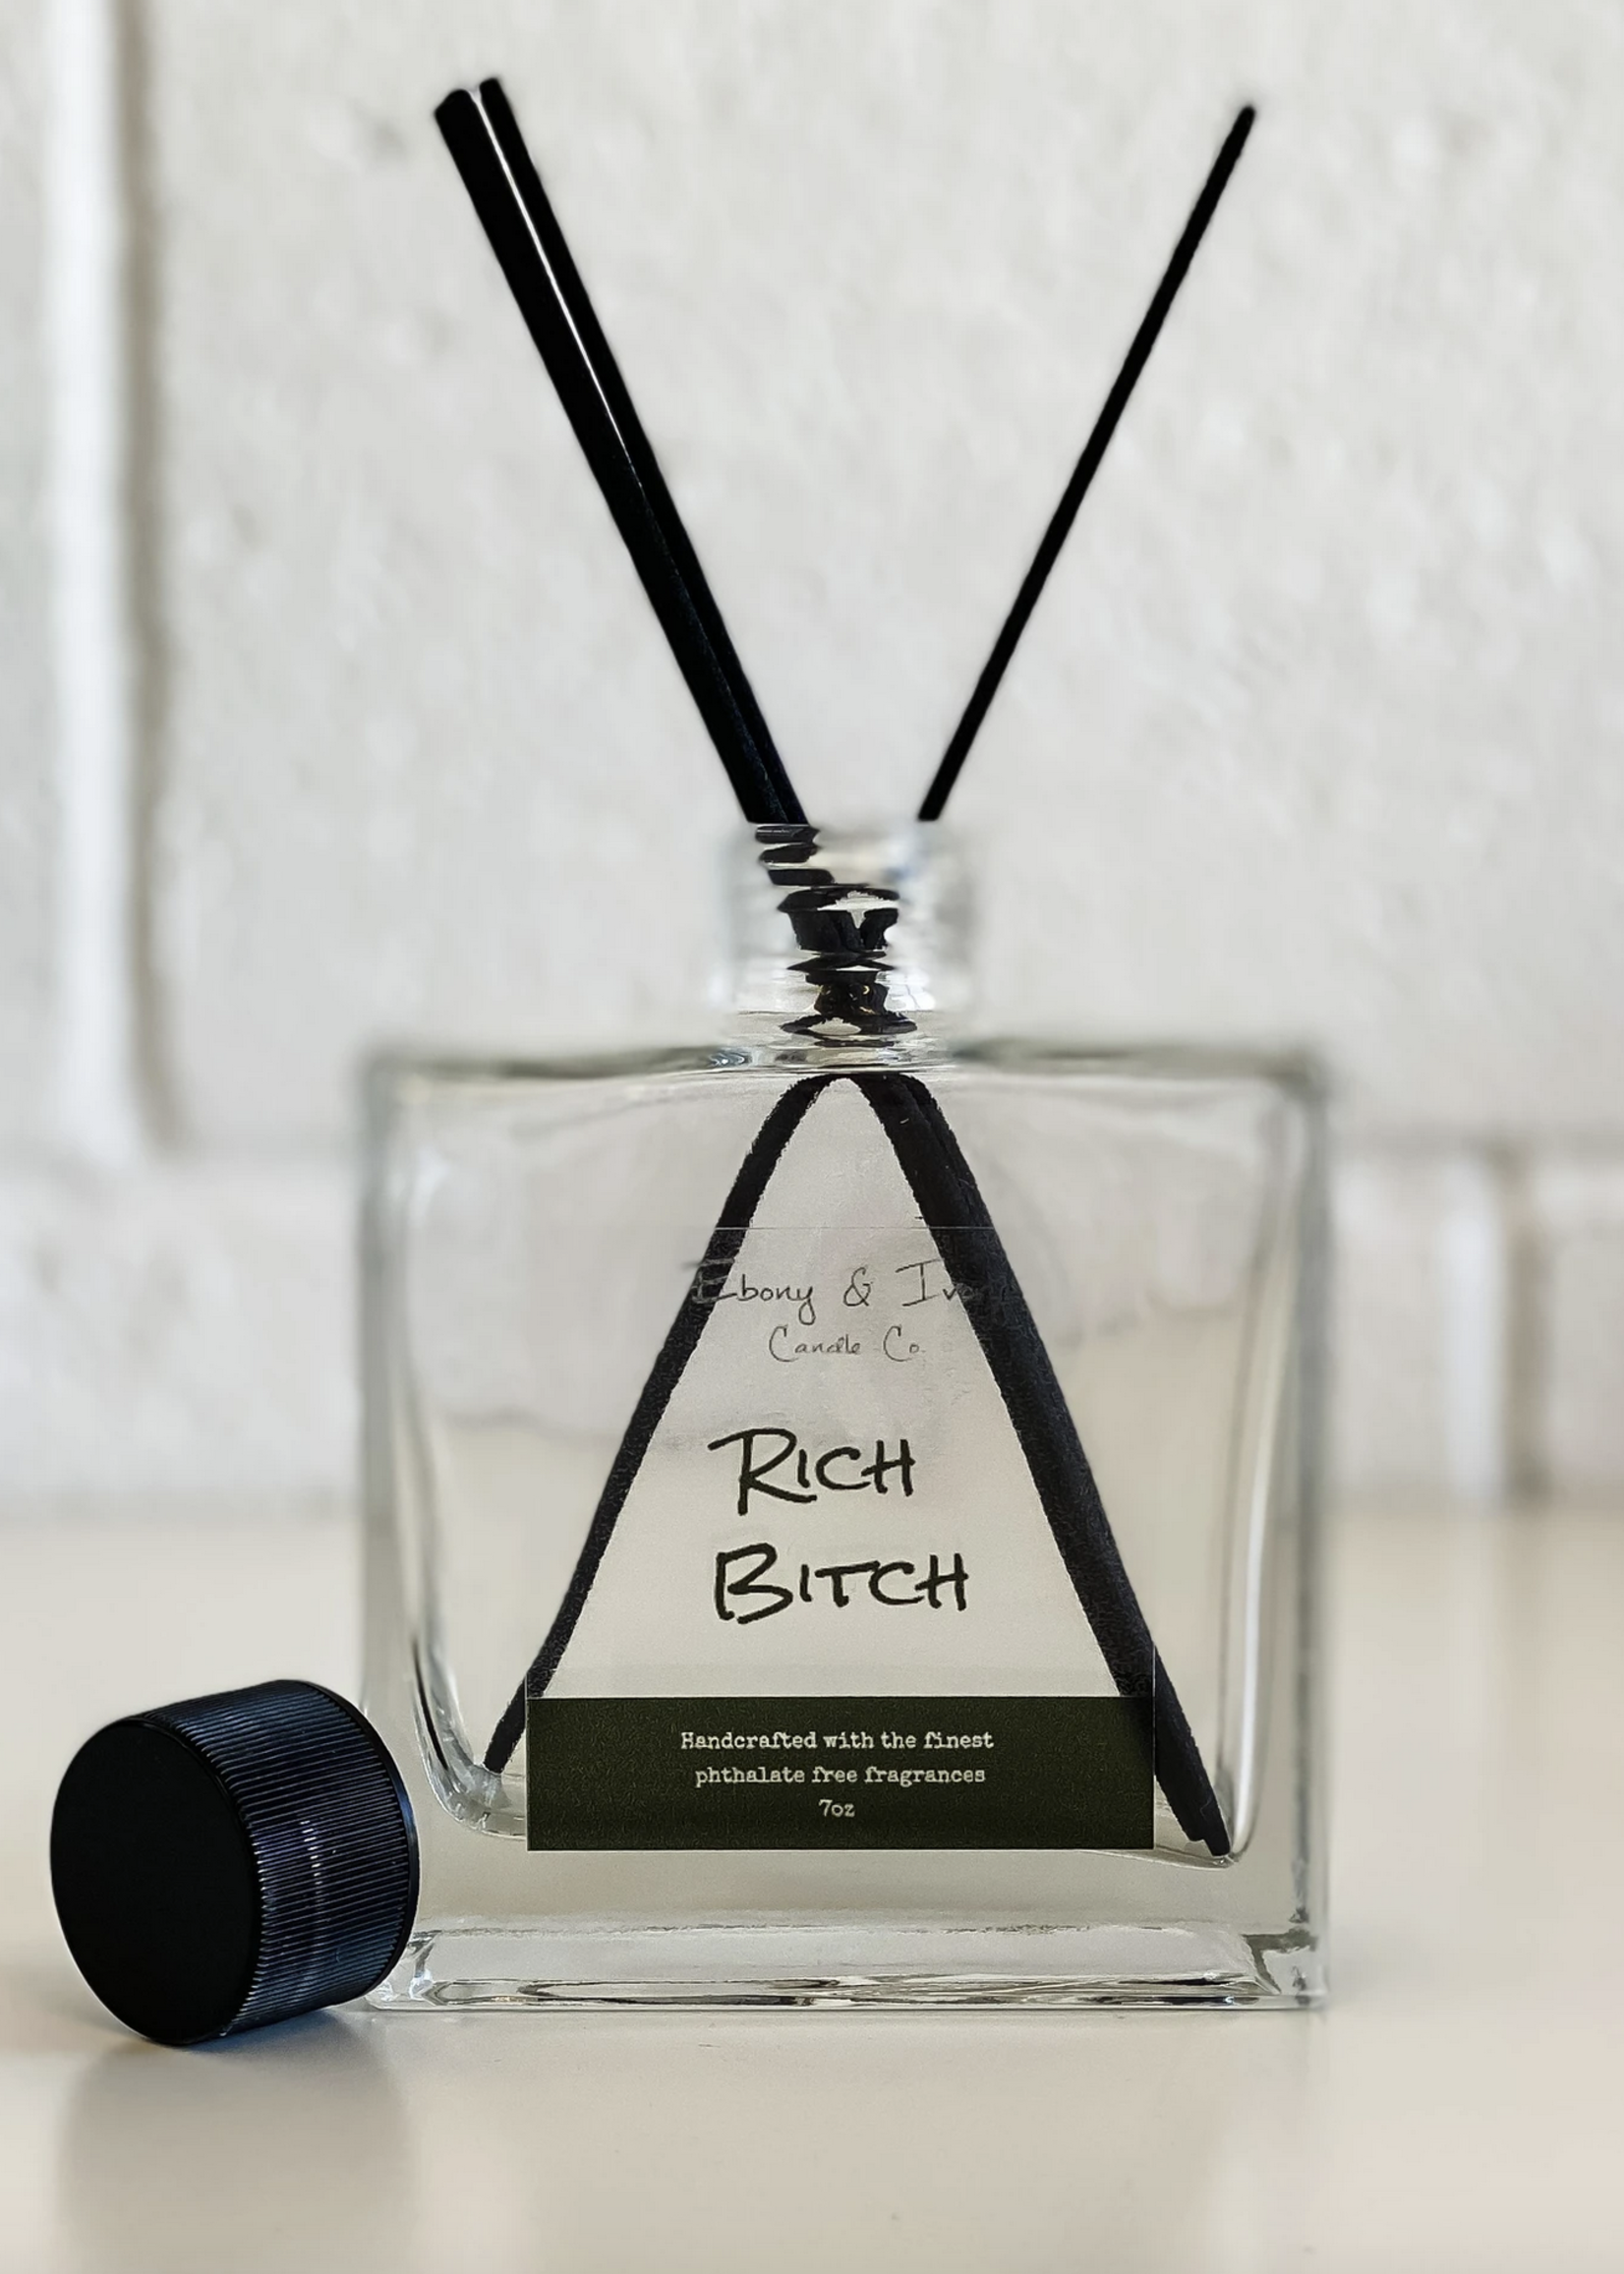 Ebony & Ivory Candle Co. Luxx Diffusers Rich Bitch